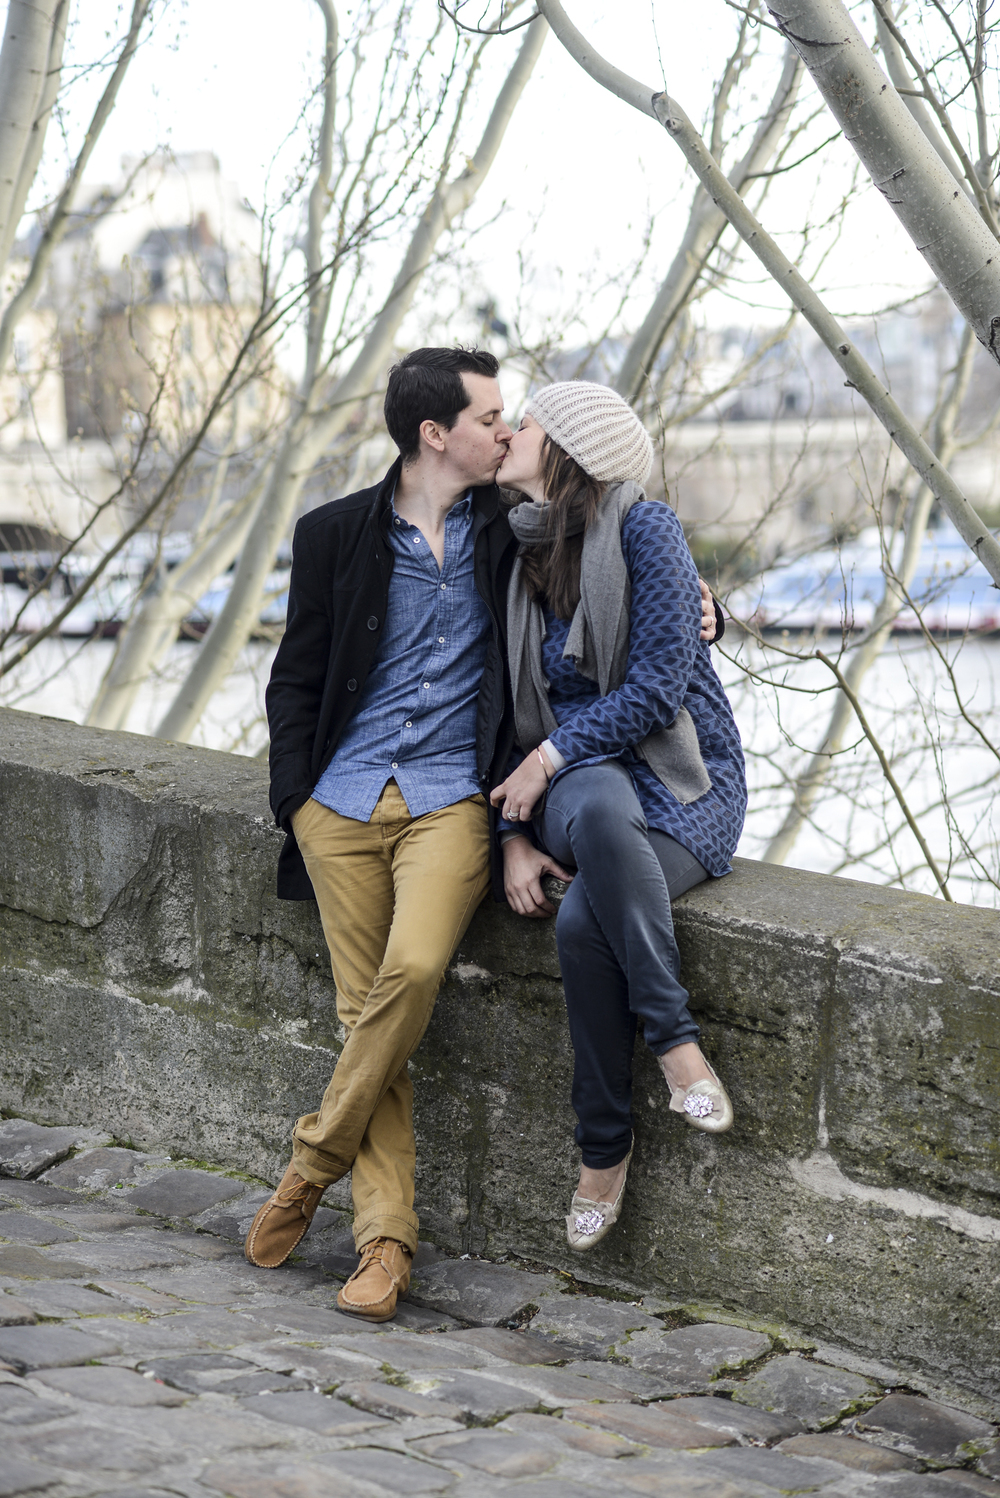 tyler_and_lauren_knight_kissing_in_paris_aspiring_kennedy_noah_darnell